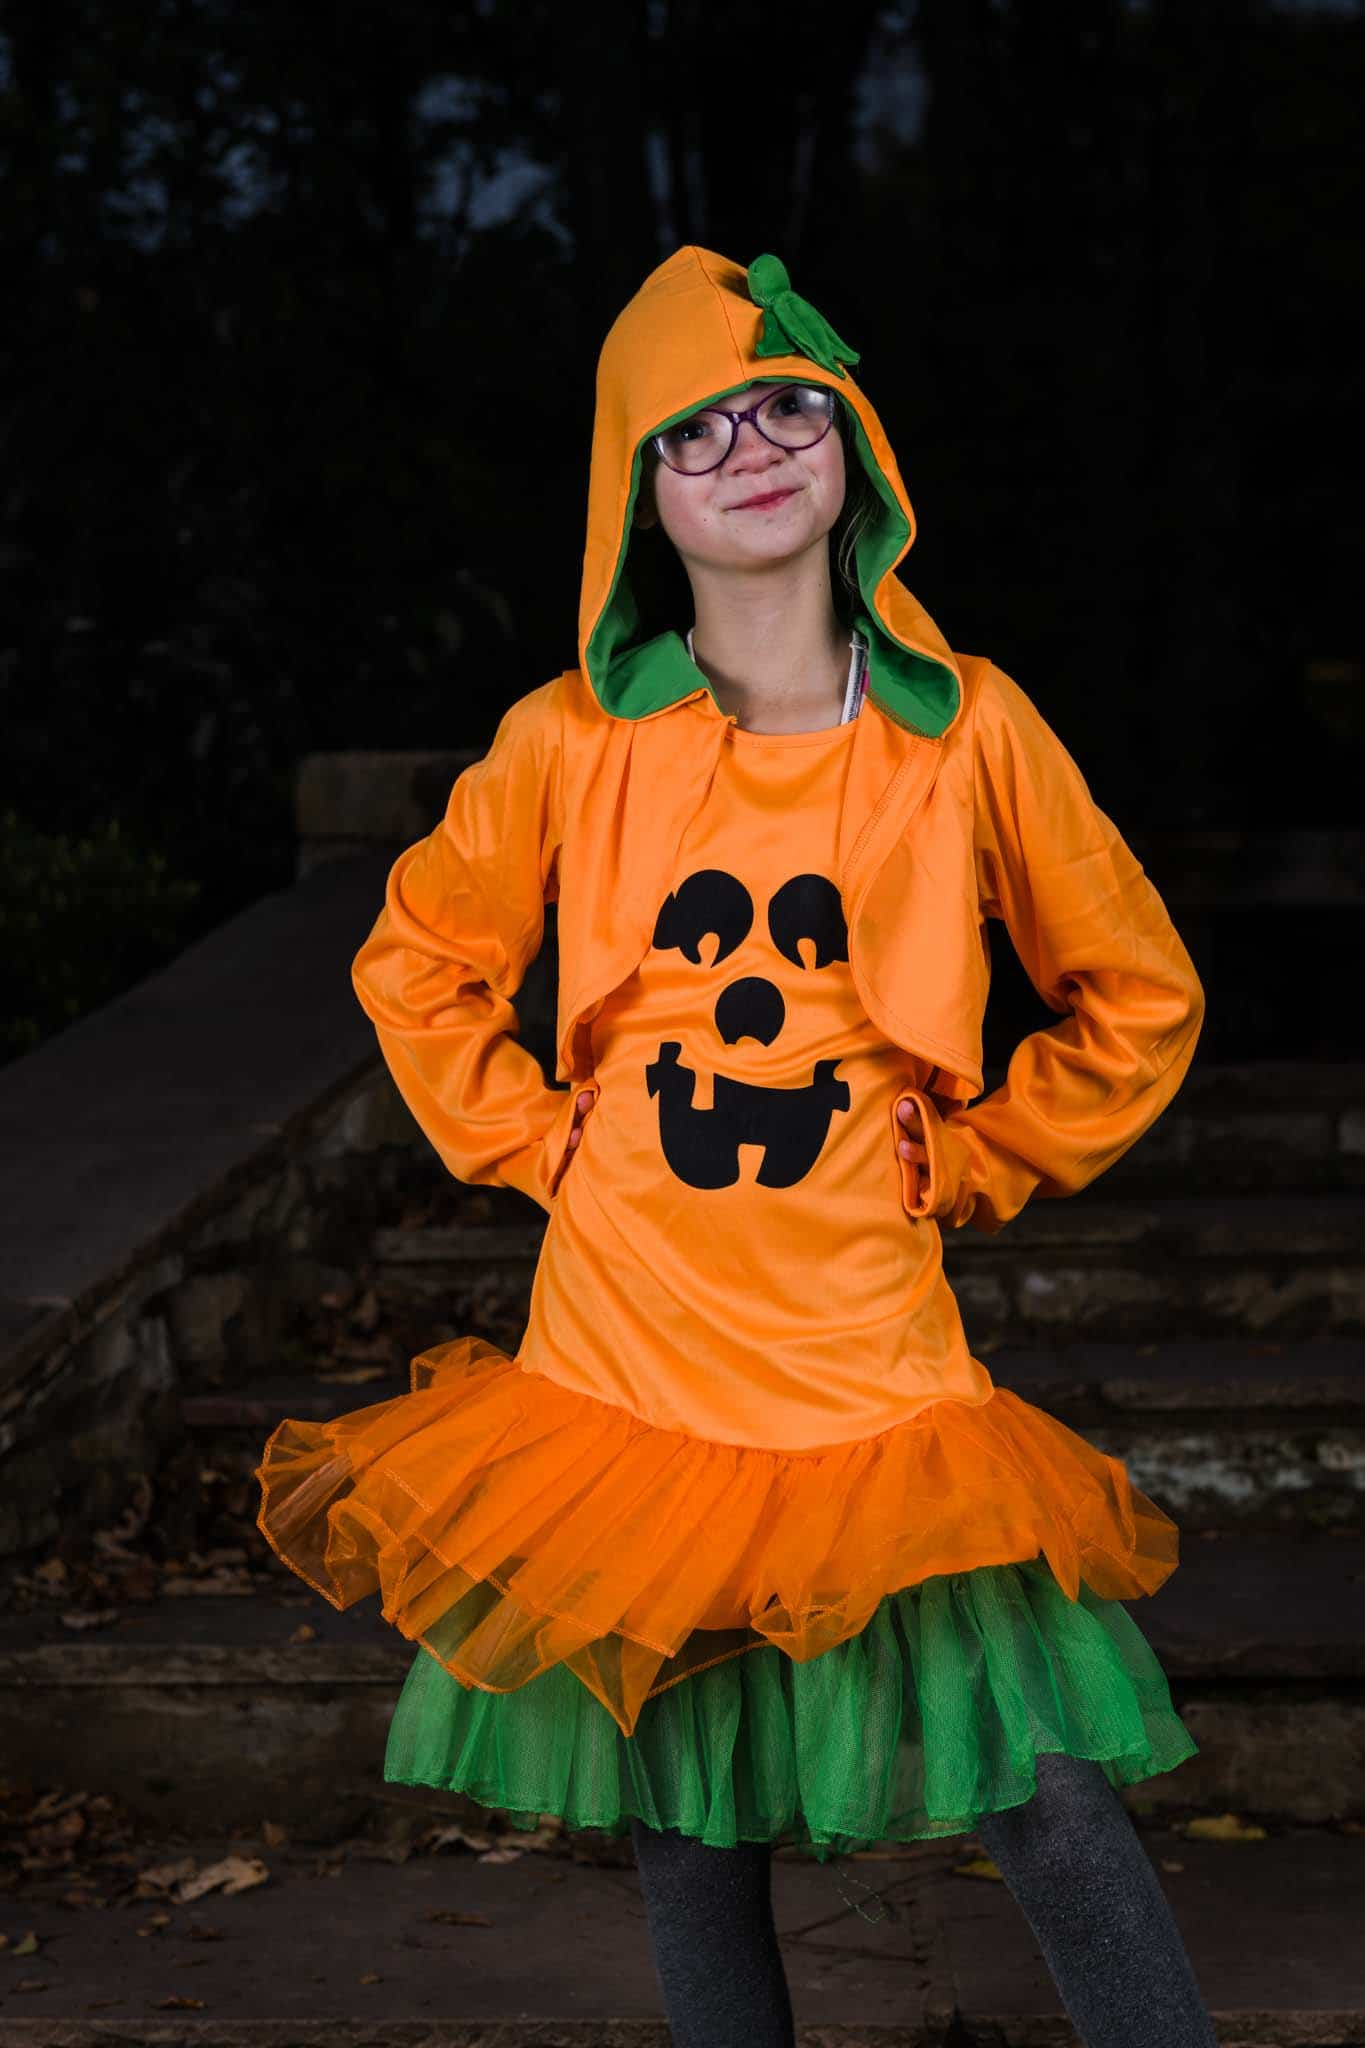 halloween pumpkin costume for girls form Funidelia